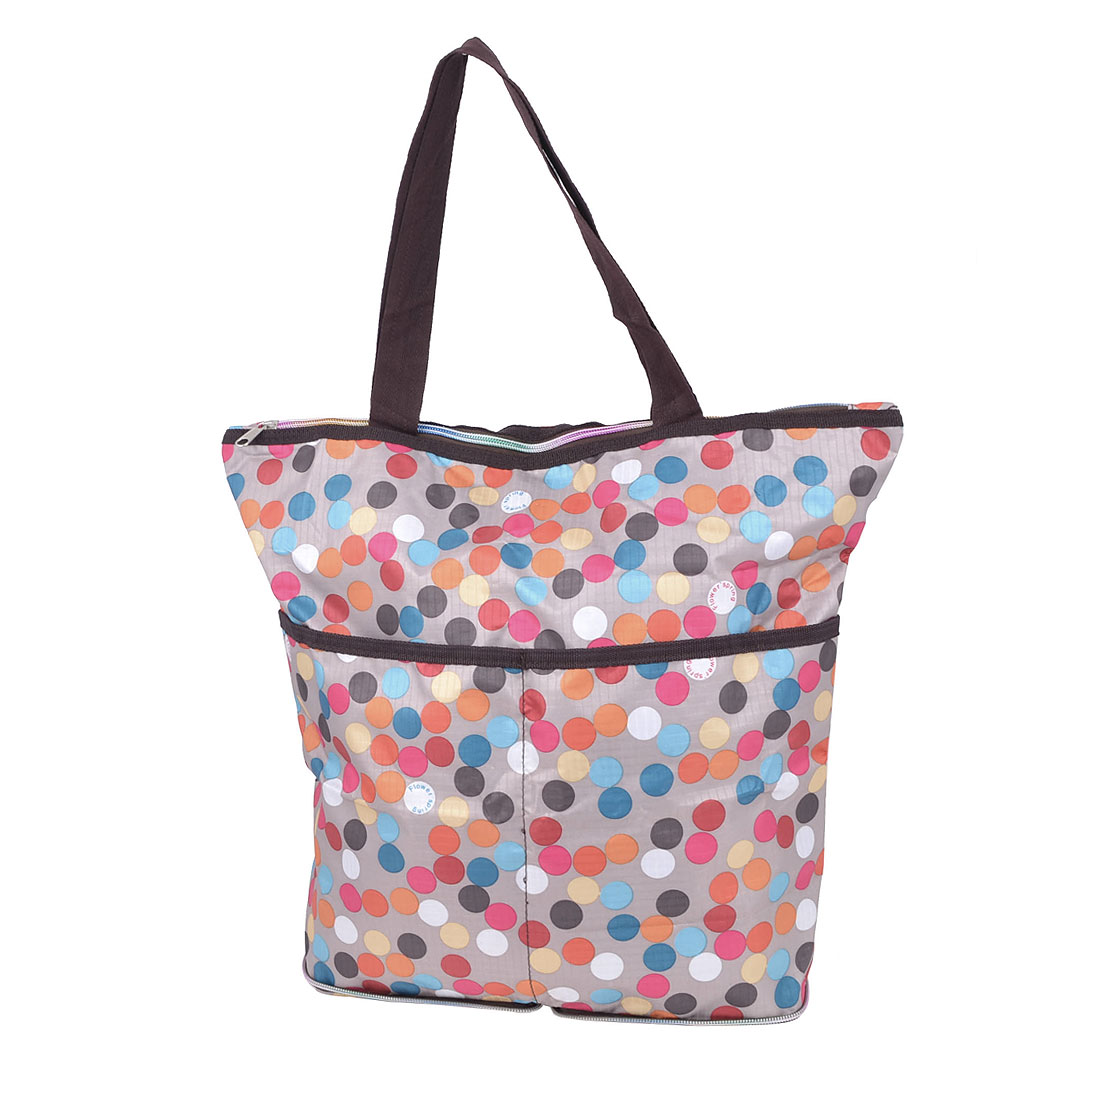 Traveling Household Foldable Dots Pattern Zipper Closure Clothes Storage Shopping Bag Holder Pouch Colorful 40x35x15cm